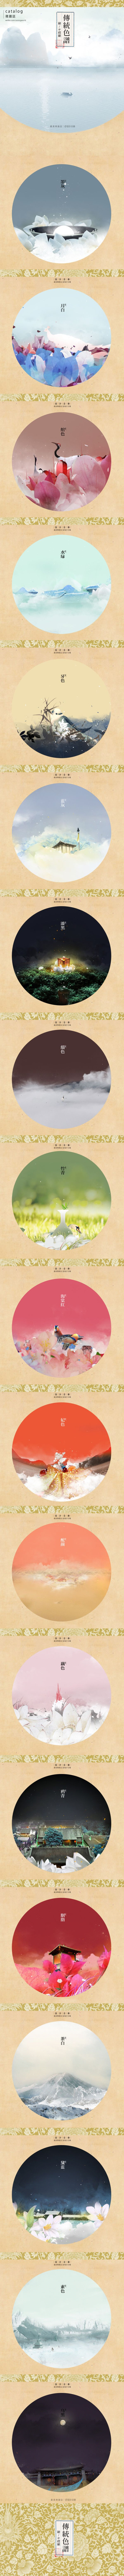 classic color imagines of China